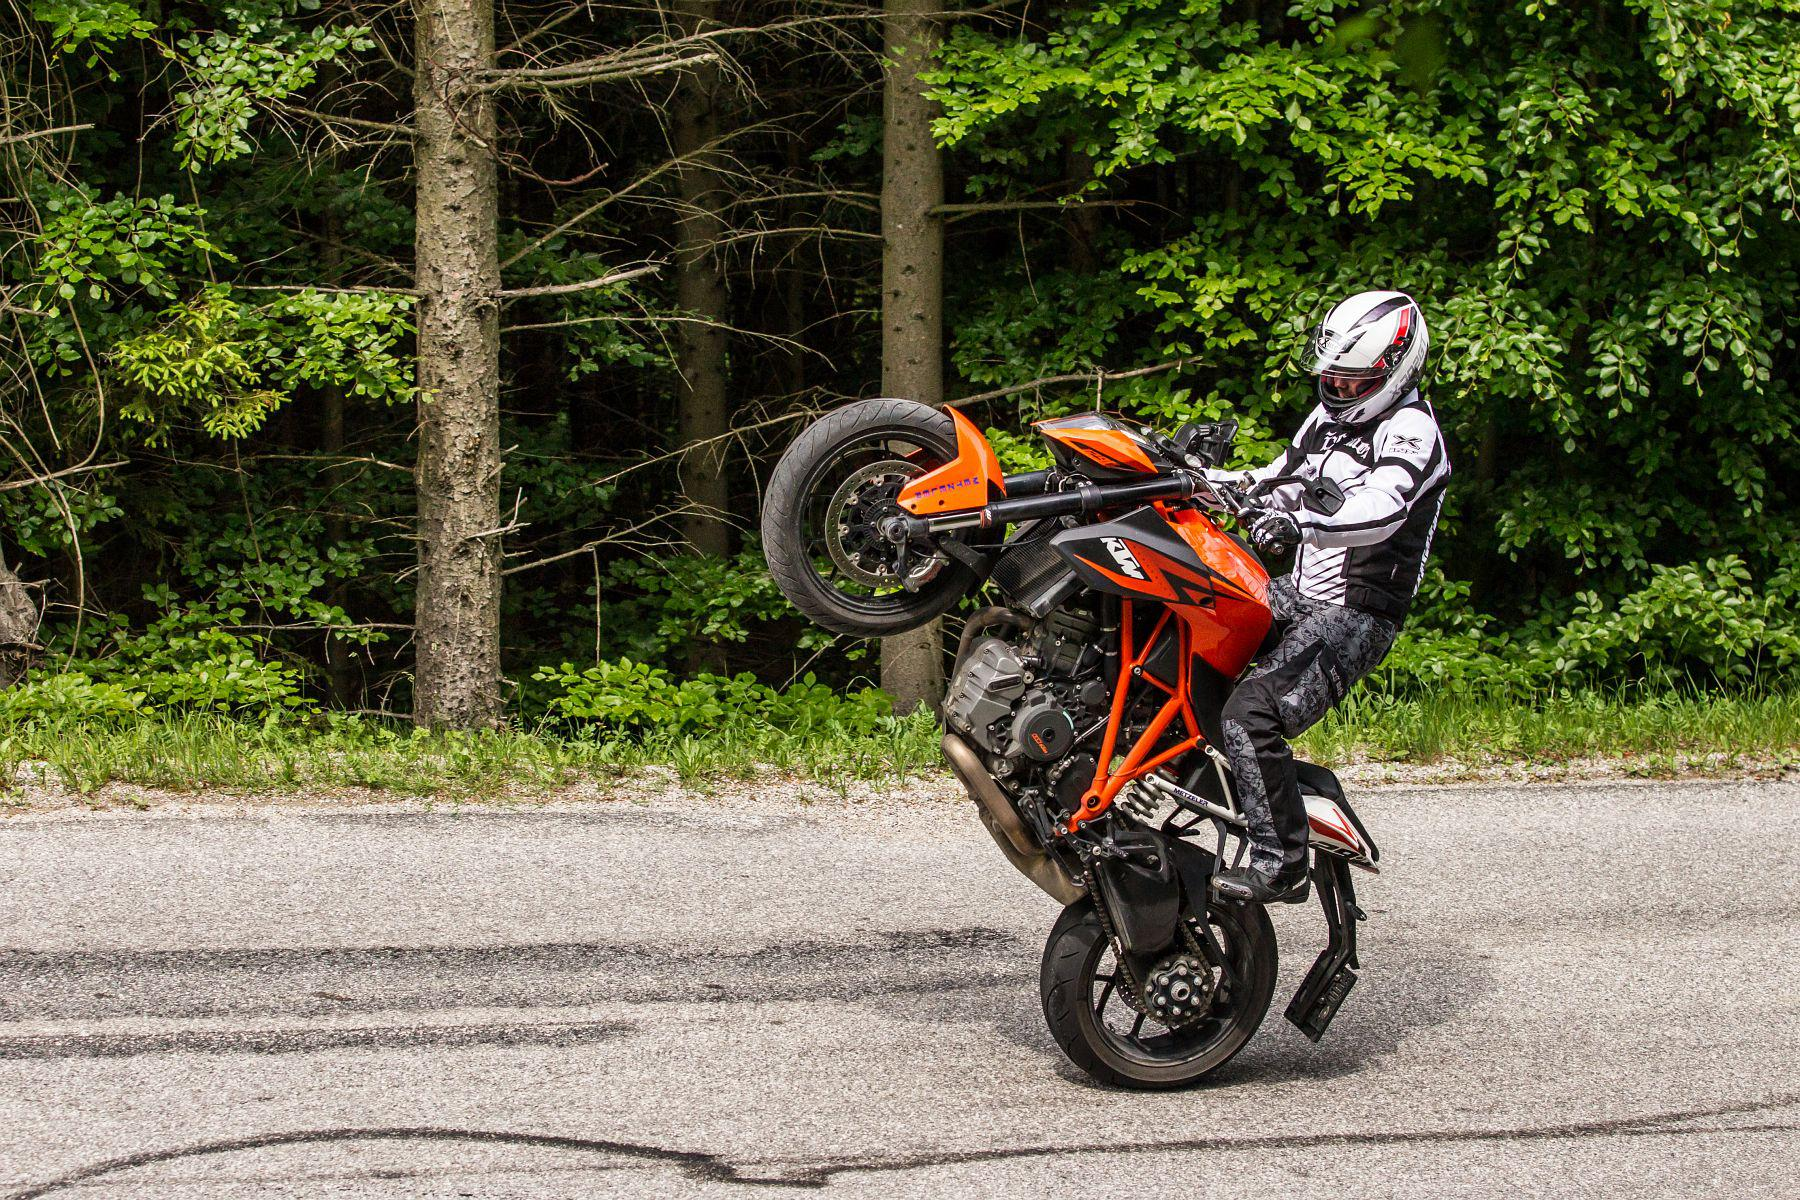 ktm 1290 super duke r stunts action test motorrad fotos motorrad bilder. Black Bedroom Furniture Sets. Home Design Ideas